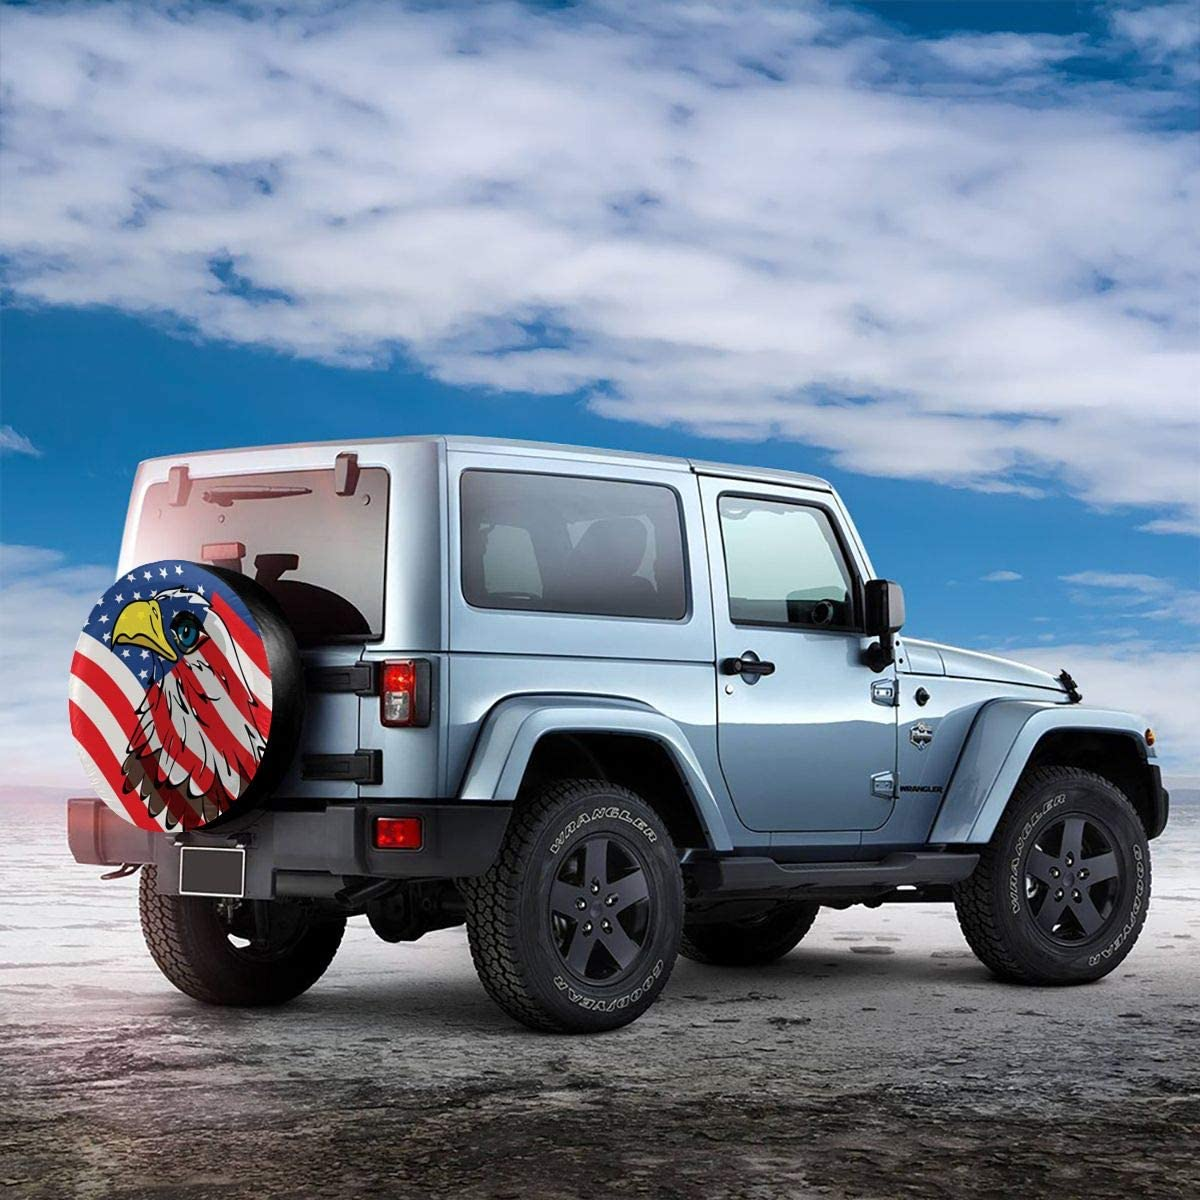 Delerain USA Flag Flower Spare Tire Covers for RV Jeep Trailer SUV Truck and Many Vehicle Wheel Covers Sun Protector Waterproof, 14 Inch for Diameter 23-27